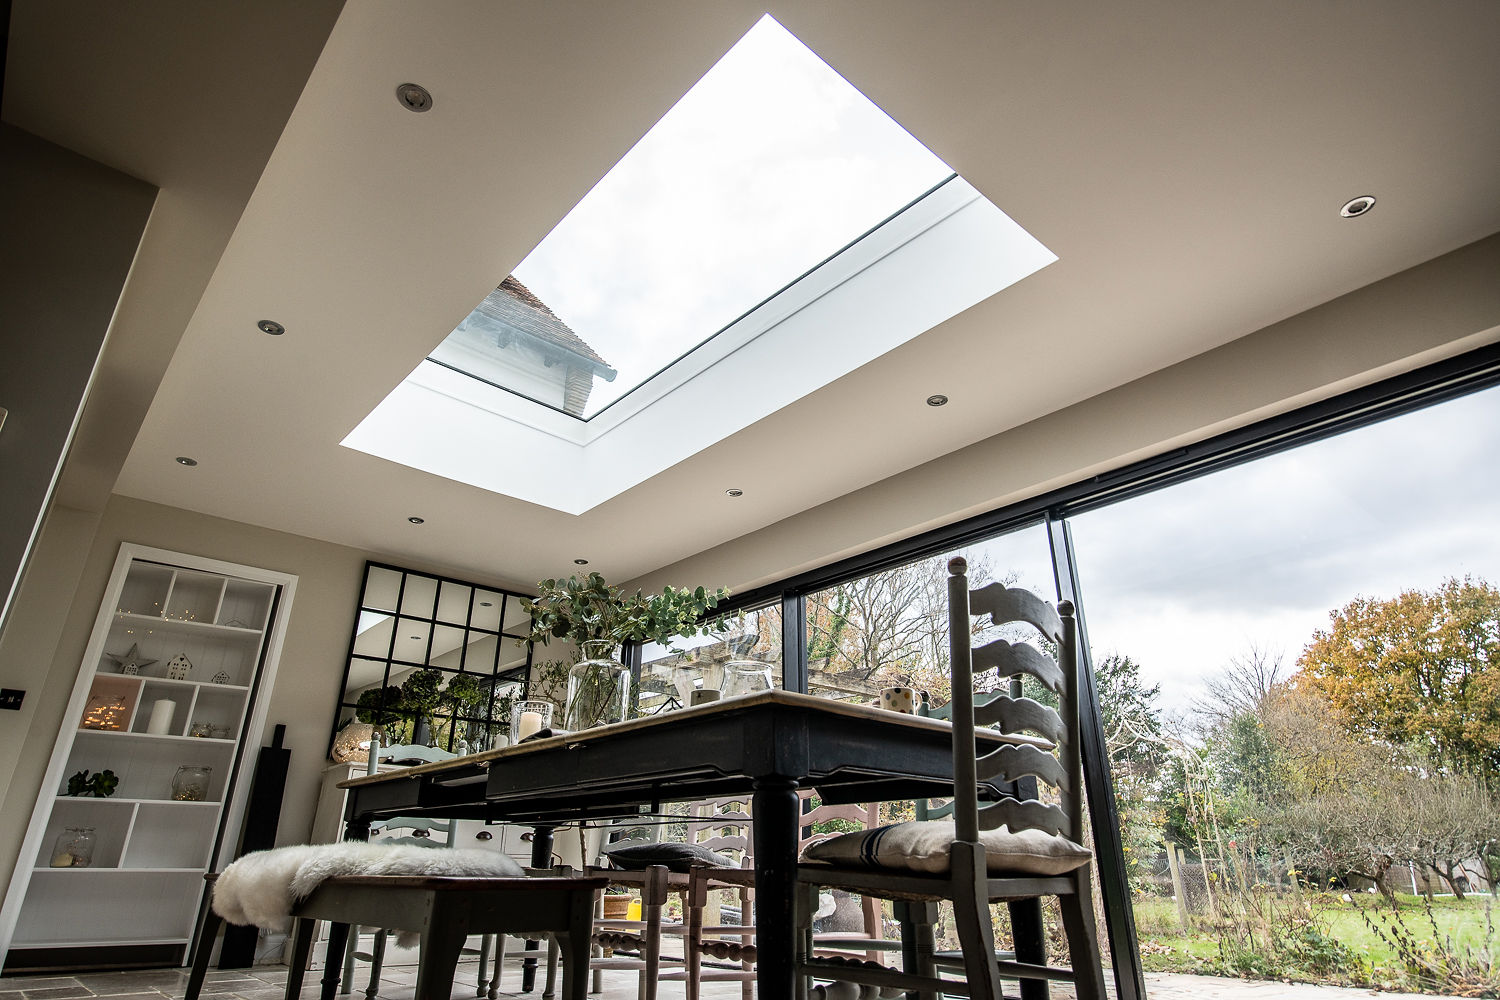 Three Essential Things to Consider Before Installing Skylights